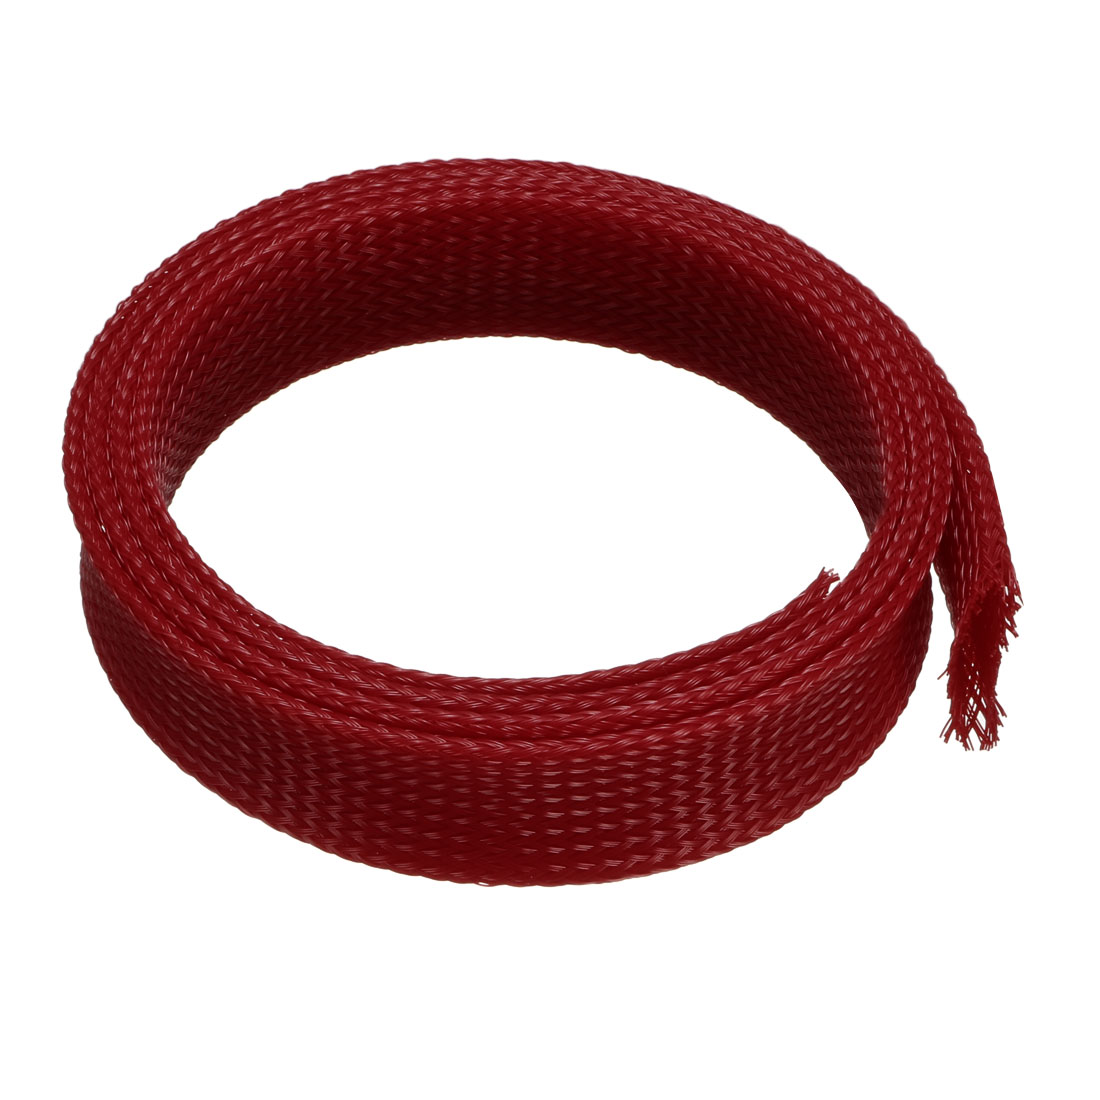 PET Braided Sleeving 3.3 Feet 1m Expandable Cable Wrap 25mm Diameter Wire Sheath Red